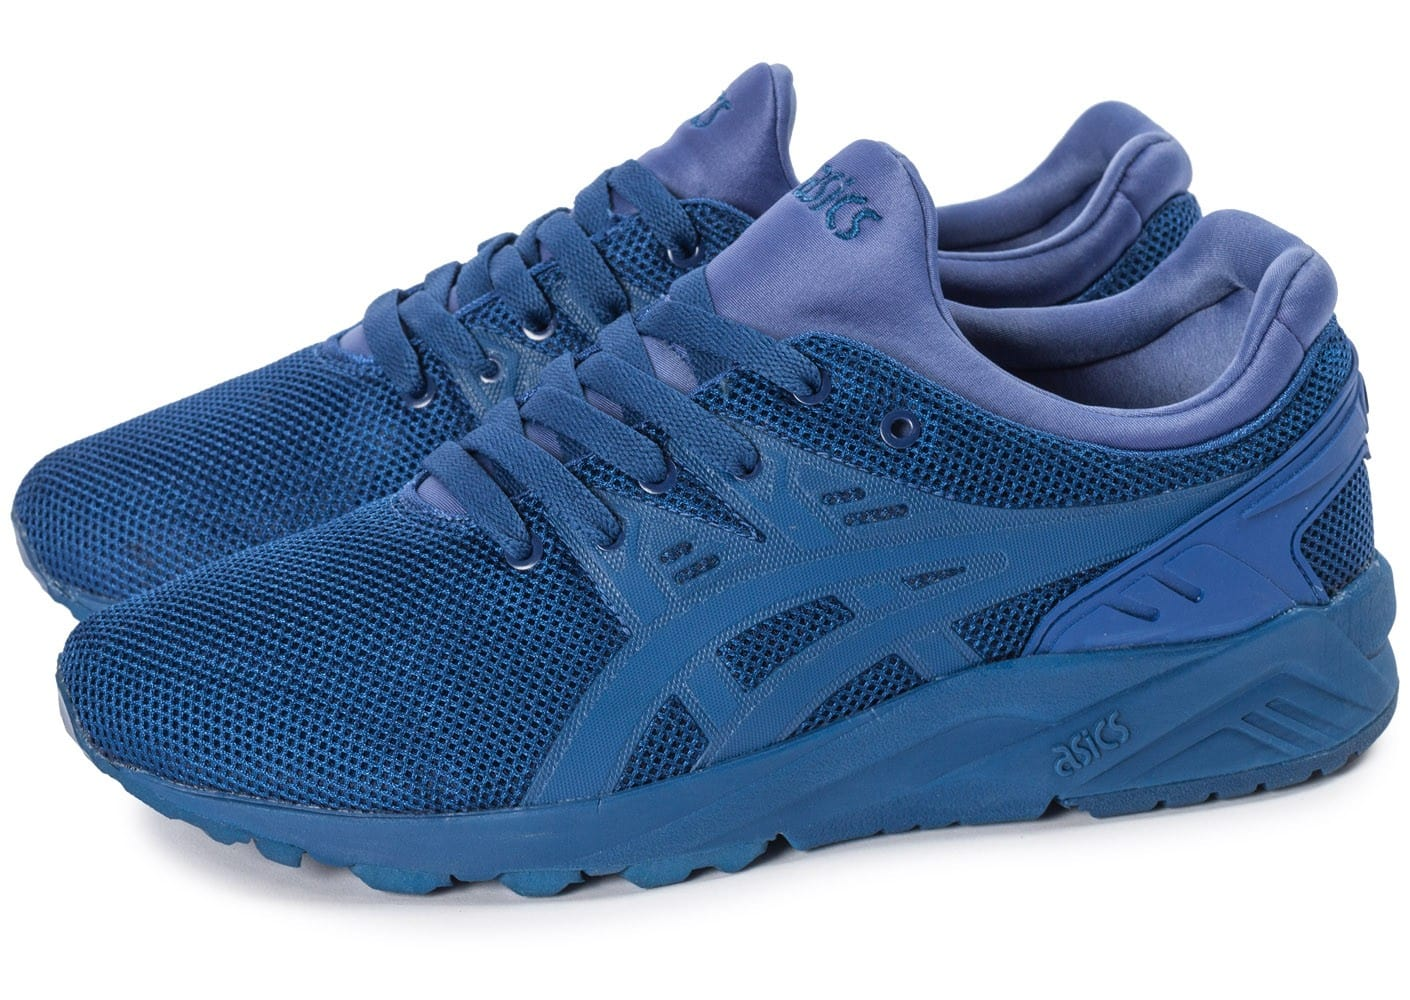 asics gel kayano trainer evo bleu chaussures homme chausport. Black Bedroom Furniture Sets. Home Design Ideas